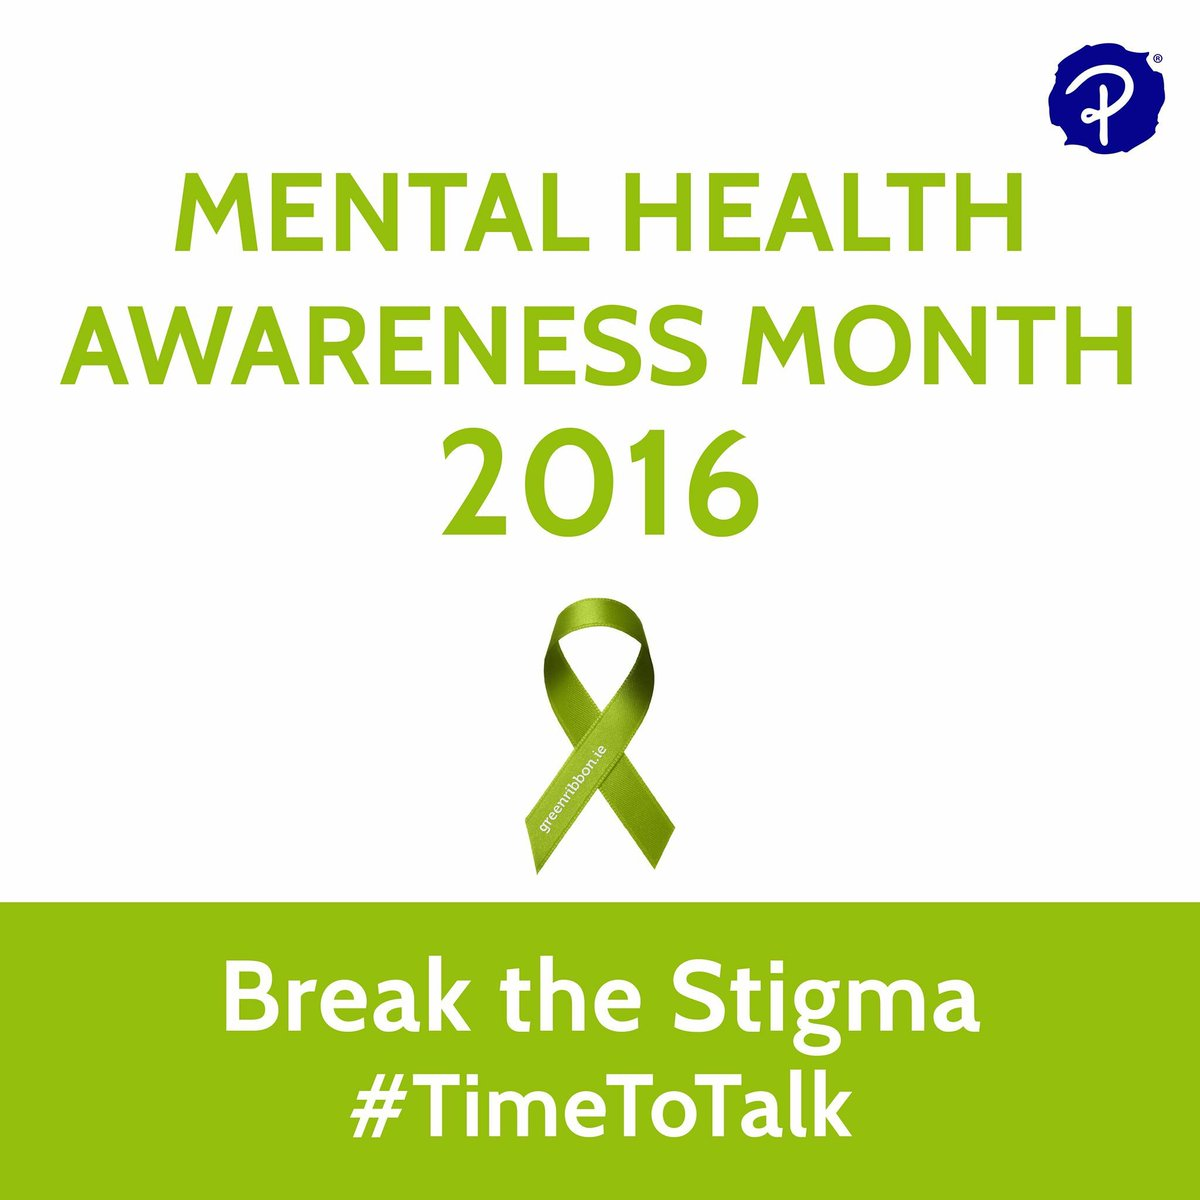 Think about it? #TimeToTalk https://t.co/1EcEeIl1km